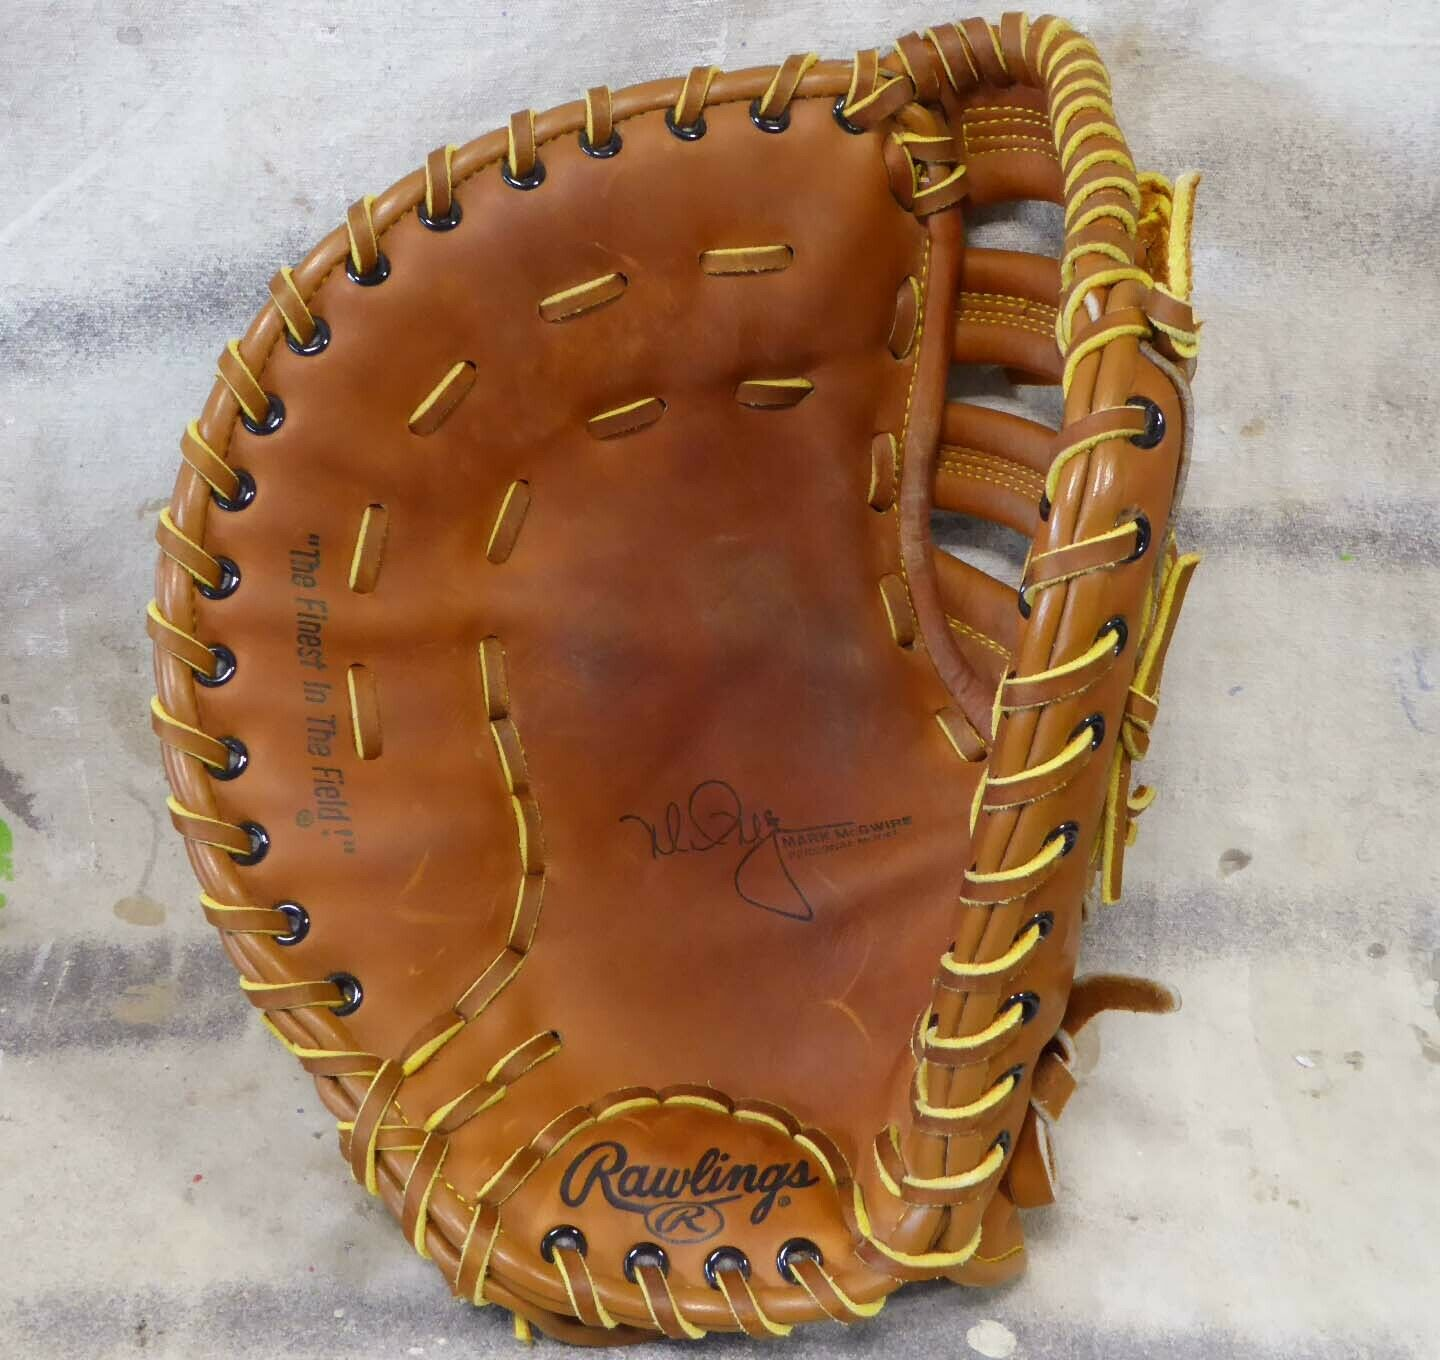 RAWLINGS RFM9 12.5  Mark McGuire MITT g  LEFT hand throw lht  NICE